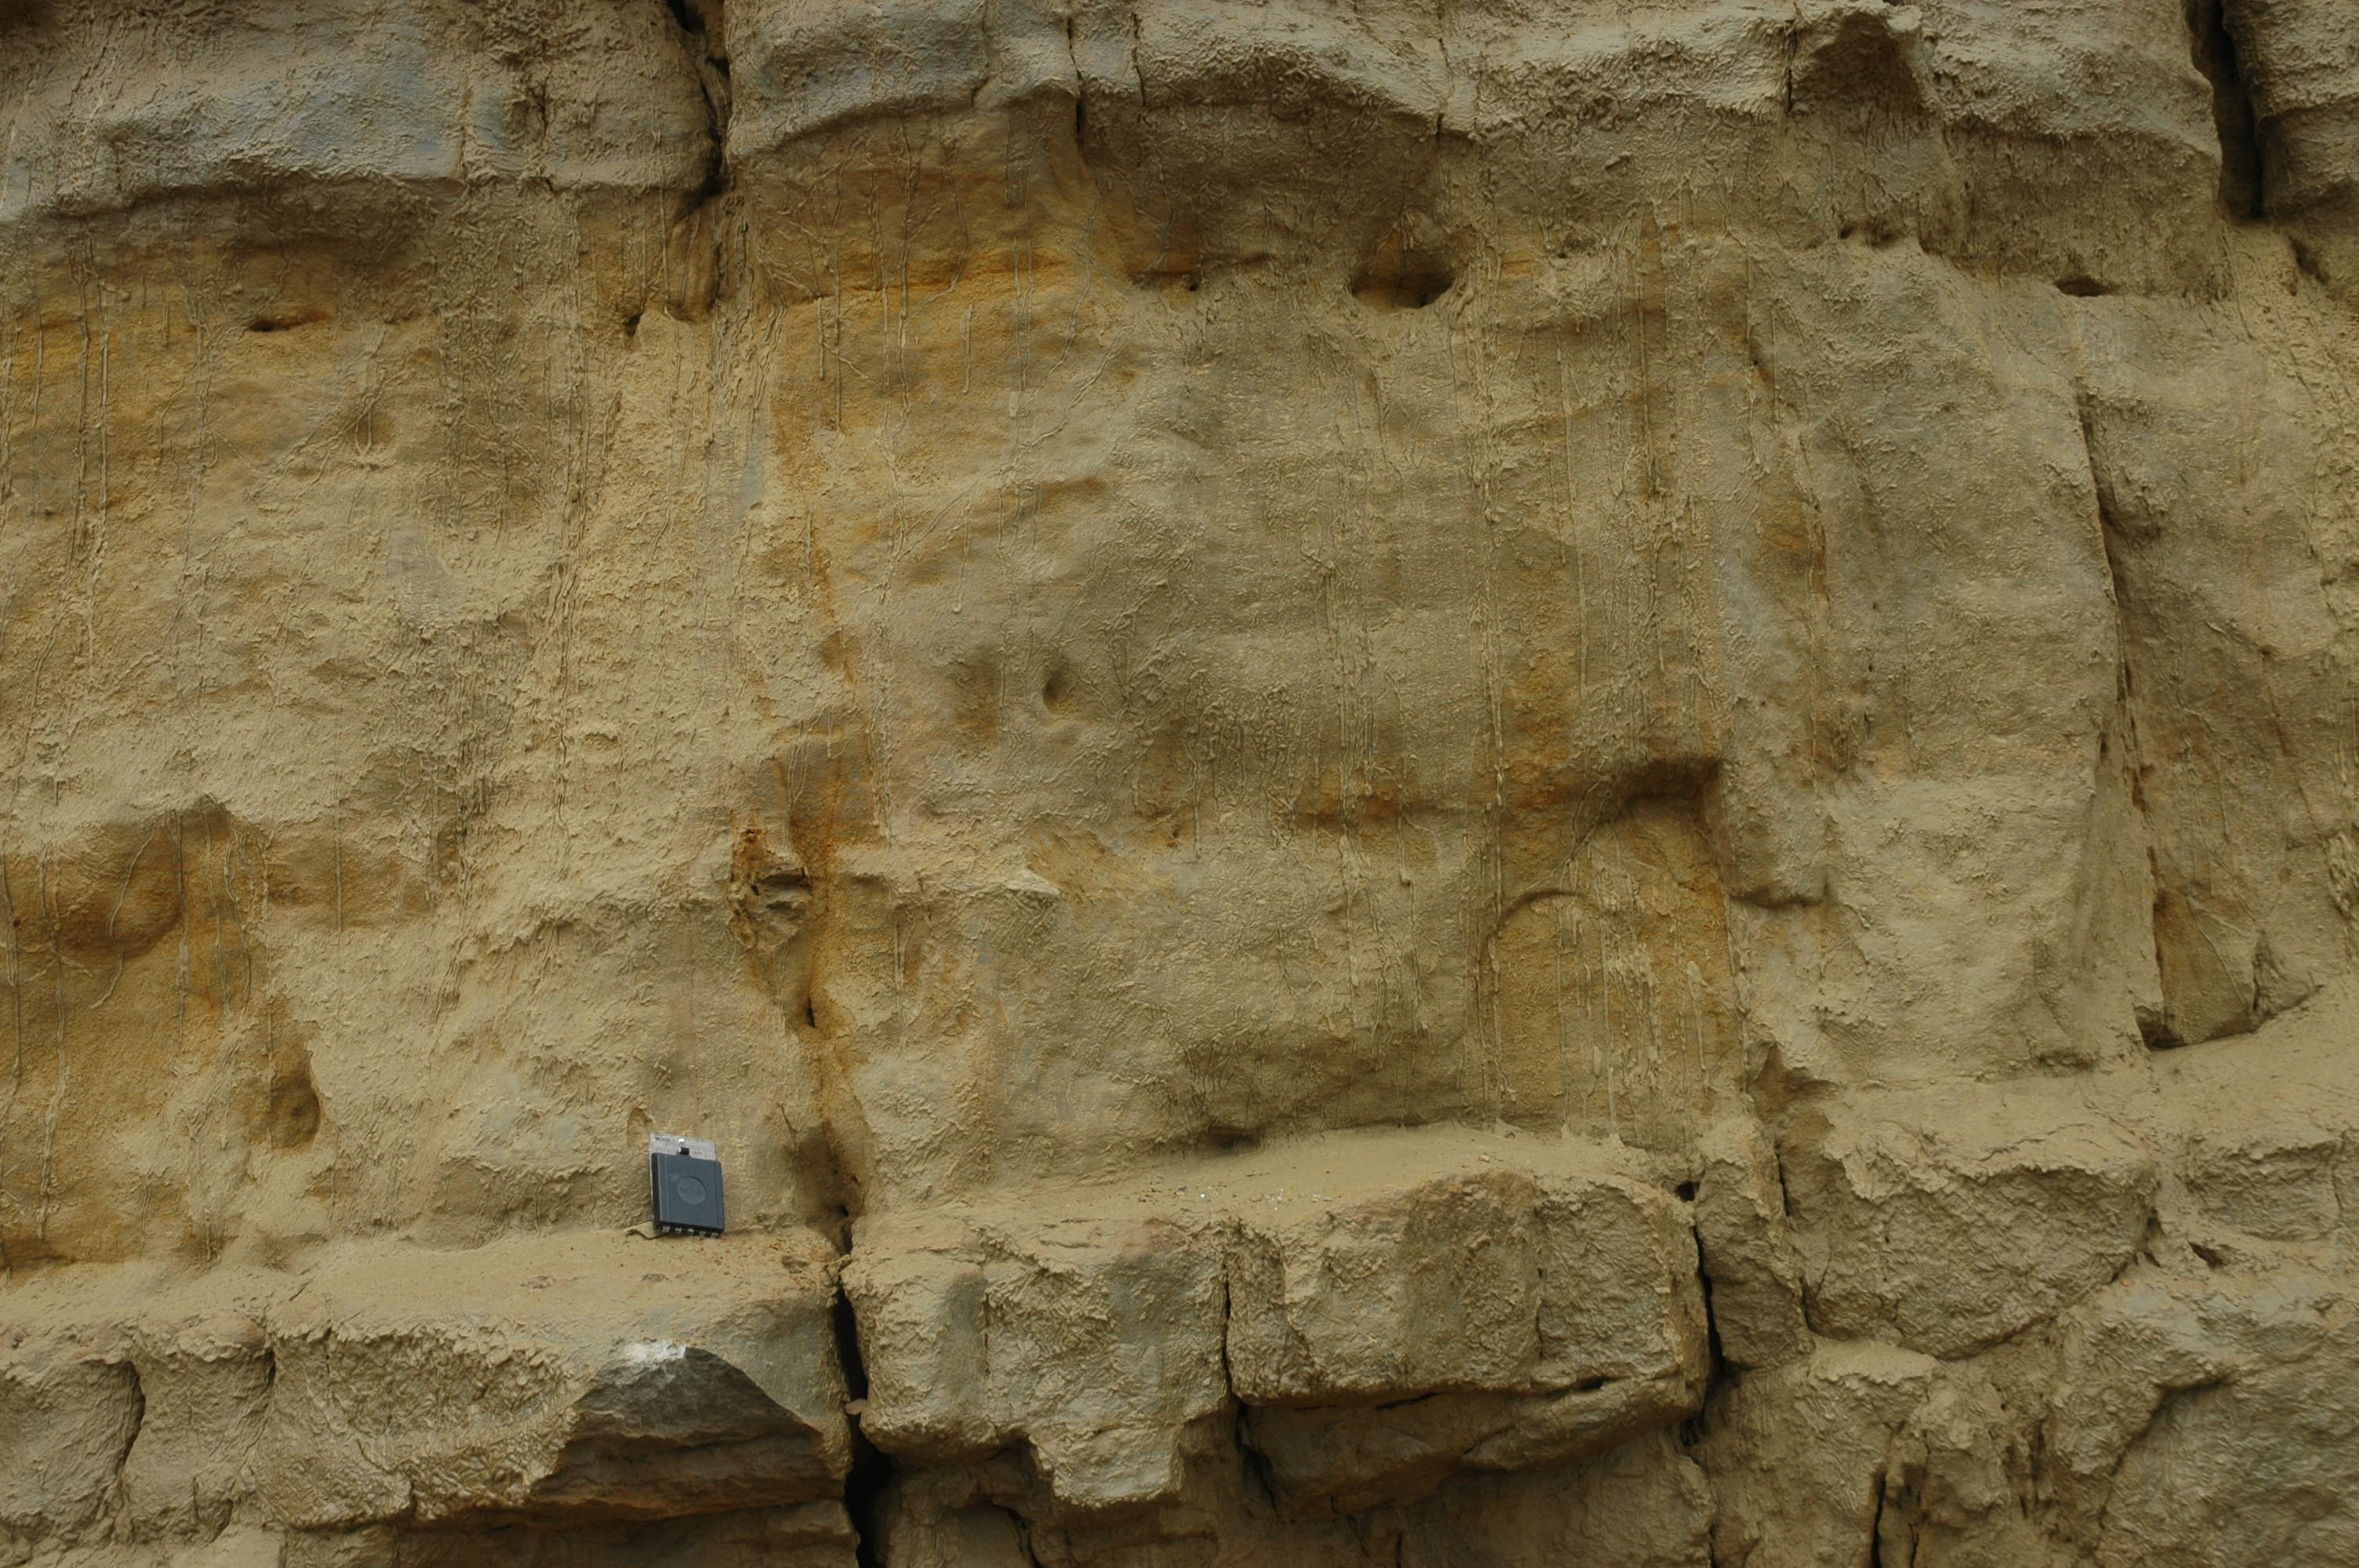 Close-up of the bridport Sands at West bay: Note how the changes between hard and soft are due to the almost invisible cement, not a change in rock type.